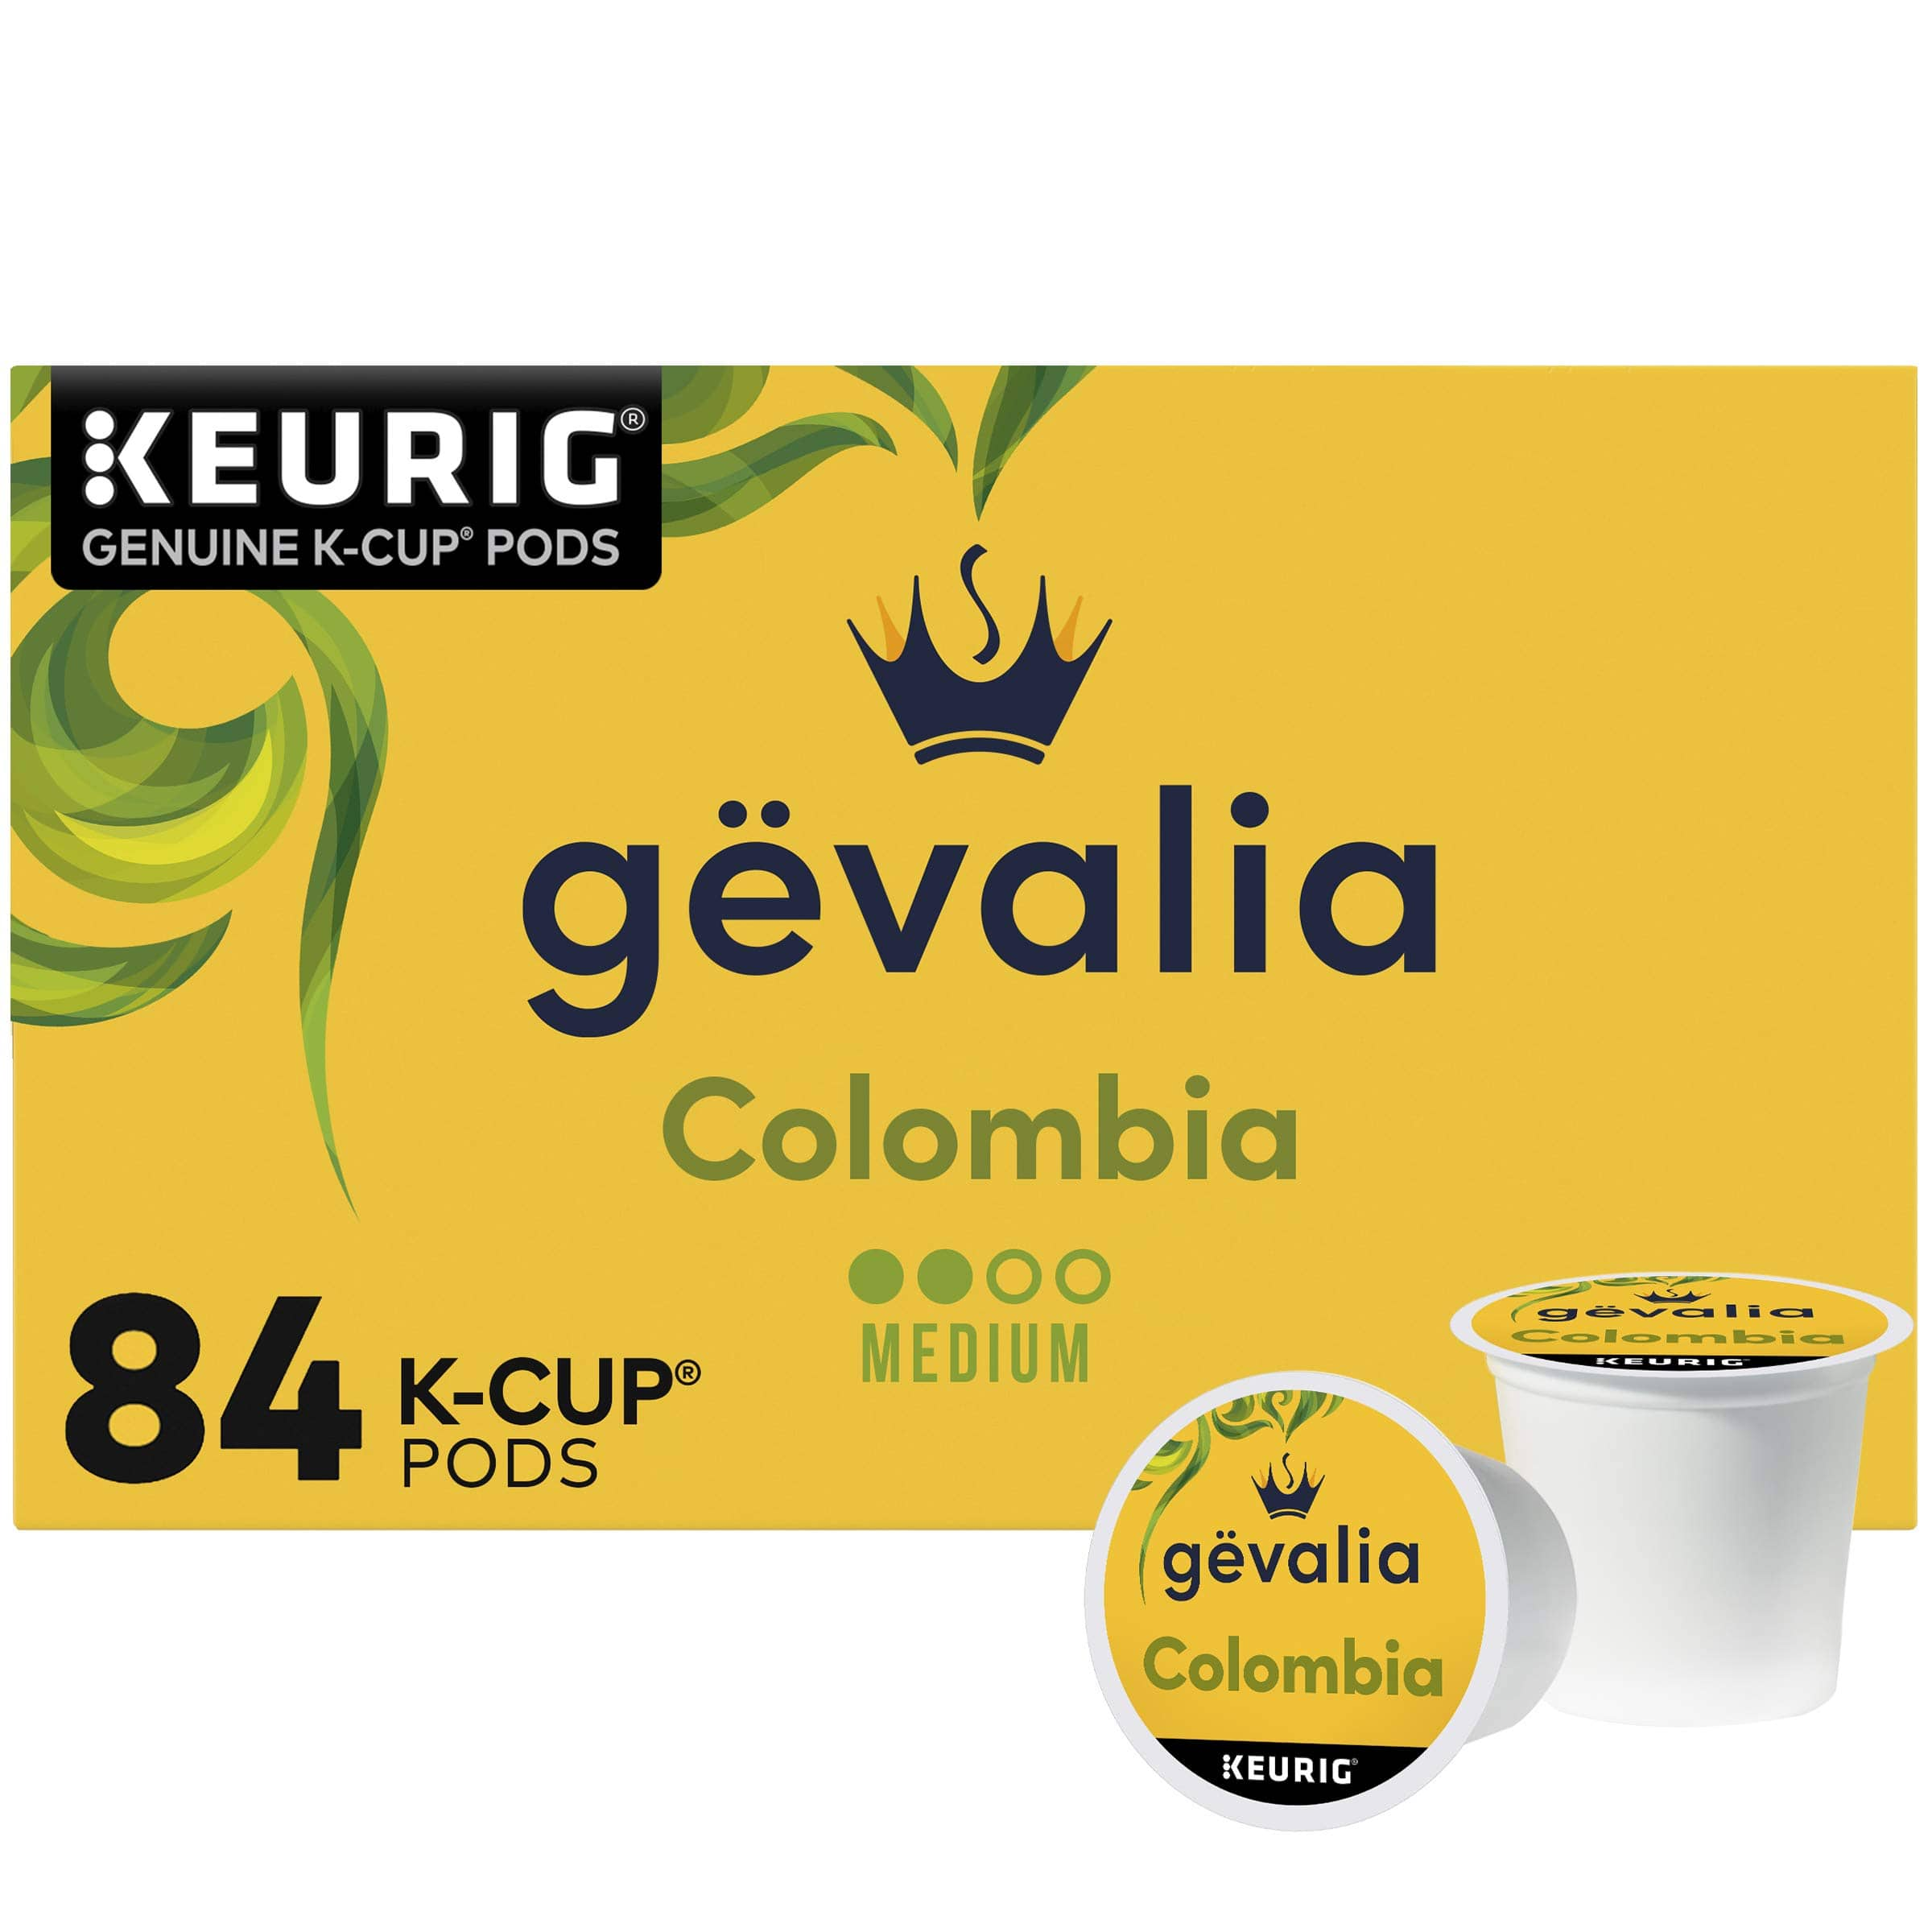 YMMV. $20.56/84 ct Box w/ 5% S&S after clipping 25% off coupon, before taxes. Gevalia Signature Blend Mild Light Roast K-Cup  84 ct box. $20.56